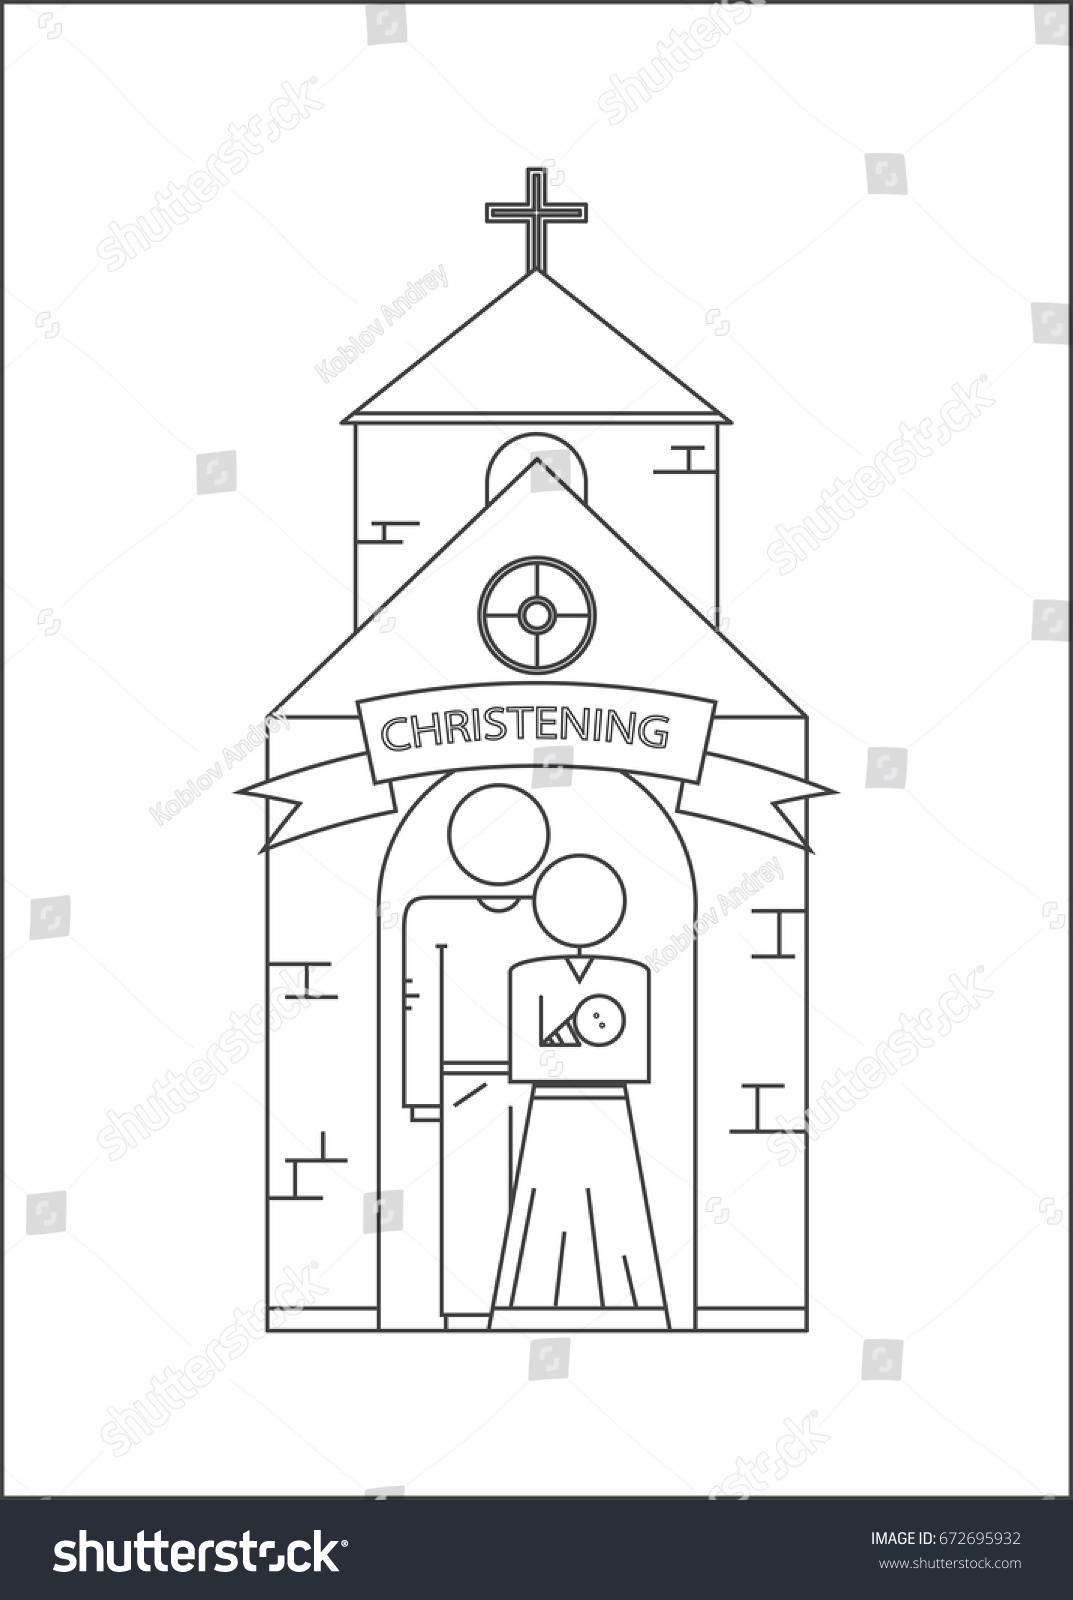 hight resolution of parents and baptism of the child godfather and godmother vector image outline style